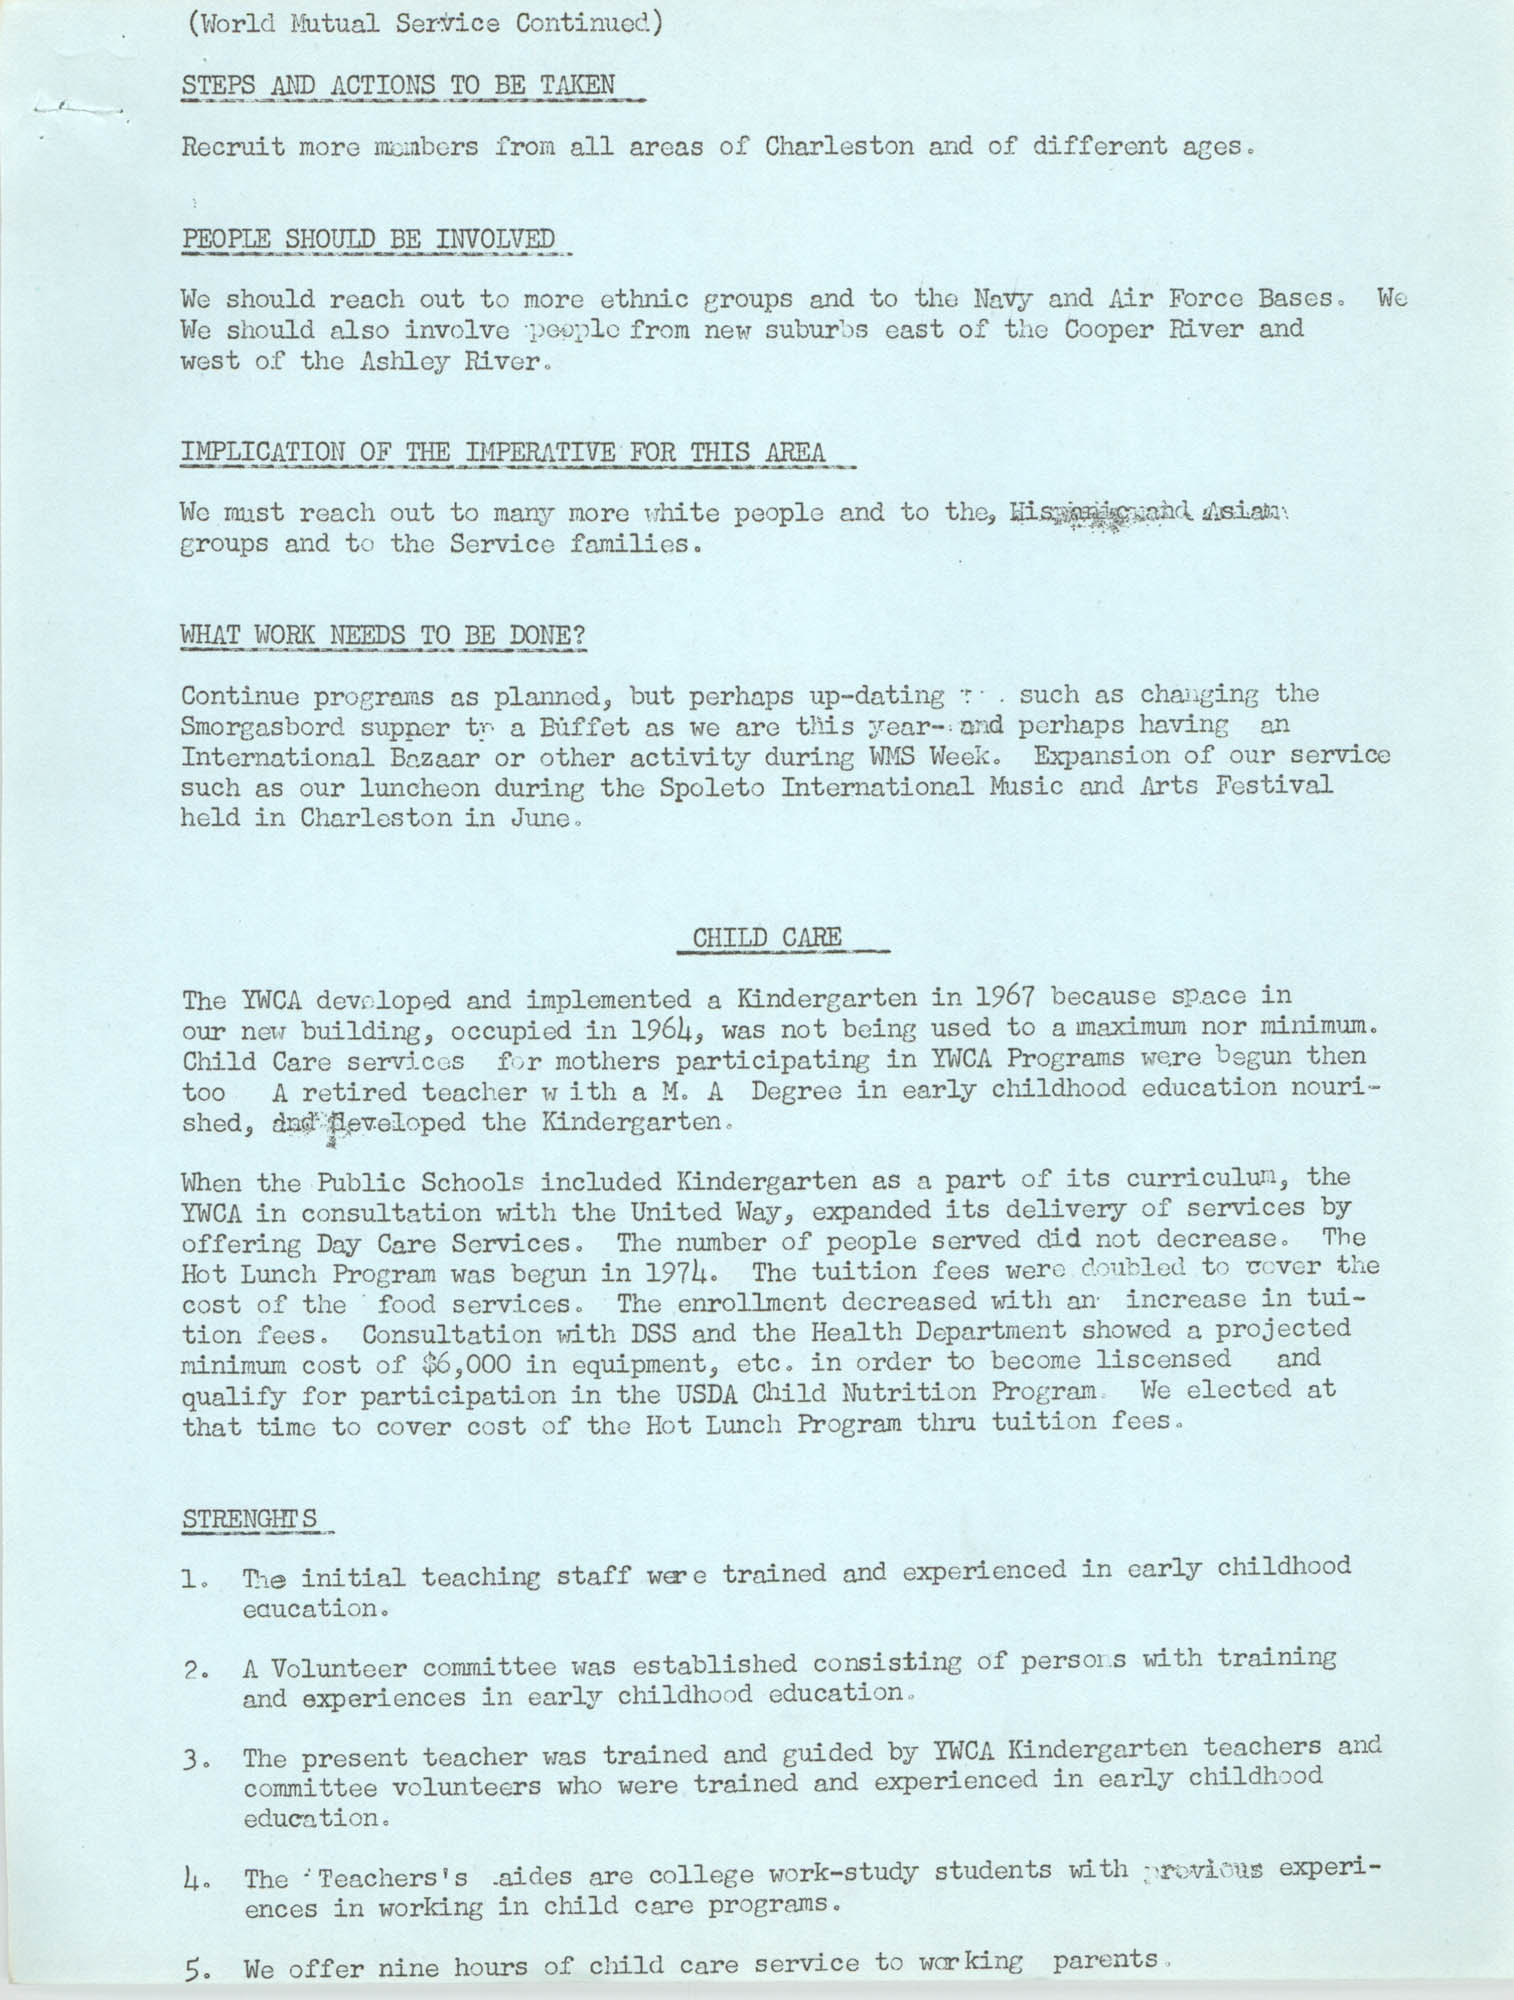 Program for the Y.W.C.A. of Greater Charleston, 1974, Page 2